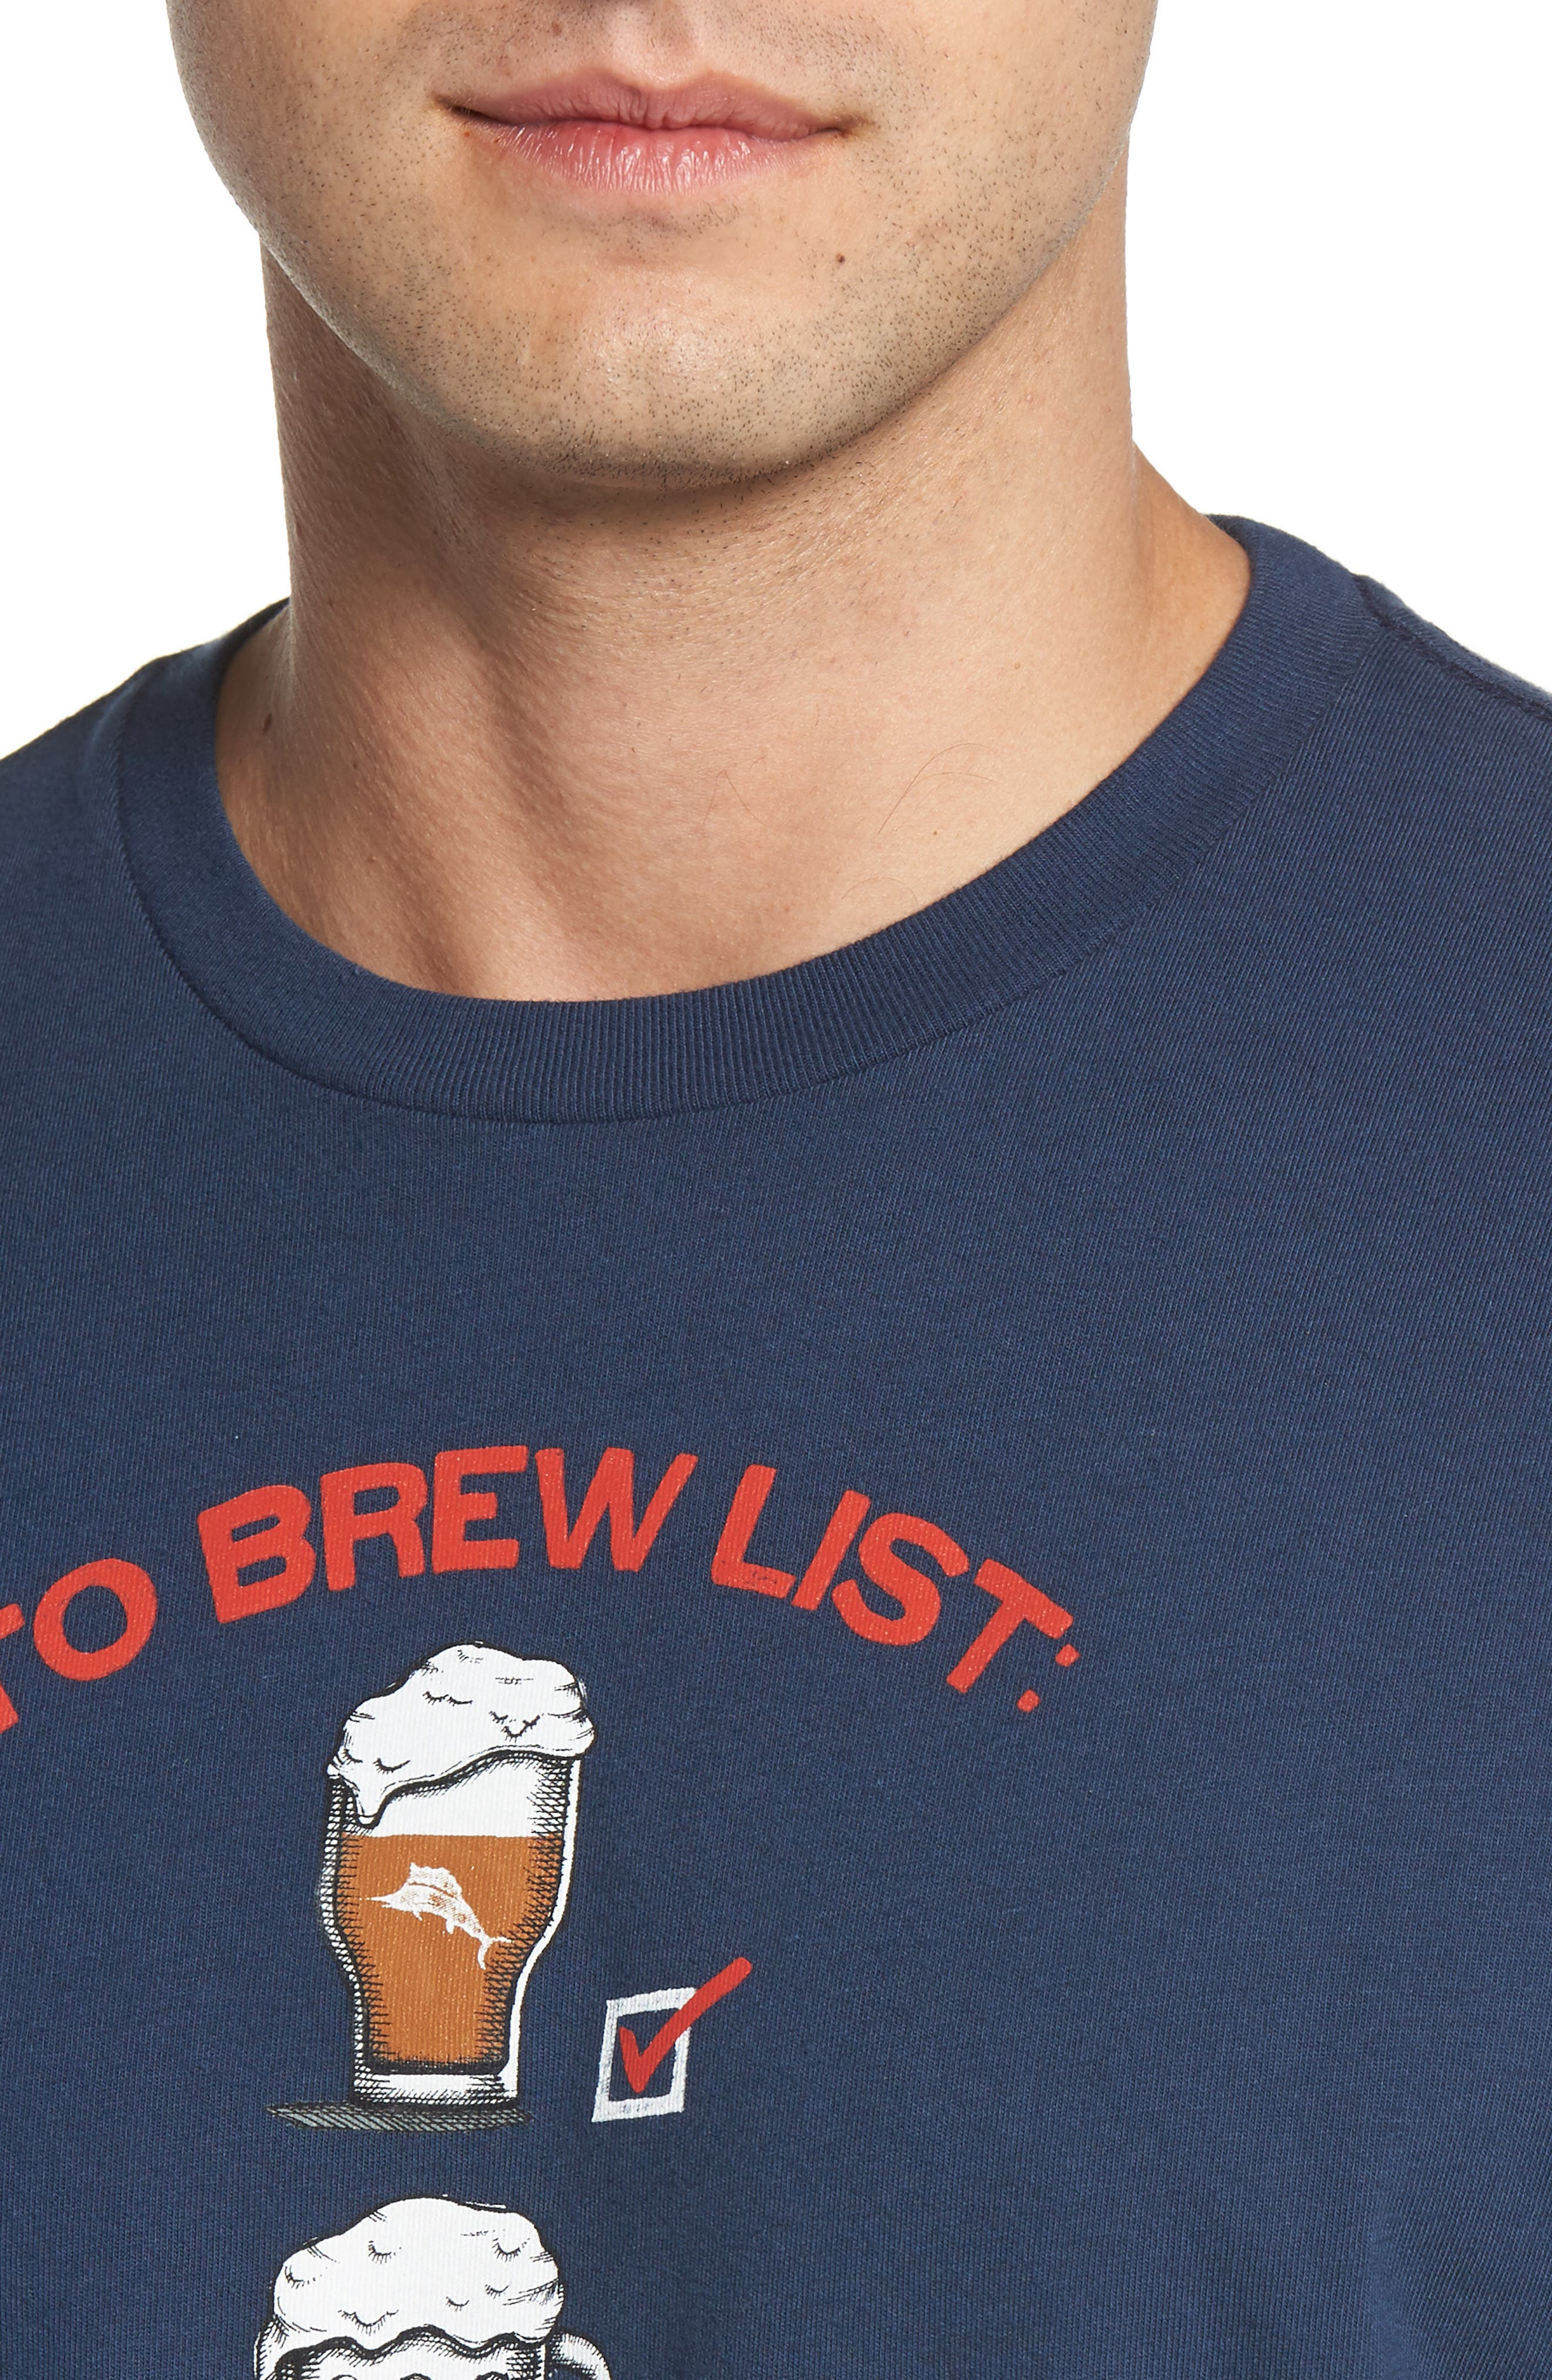 To Brew List T-Shirt,                             Alternate thumbnail 4, color,                             400